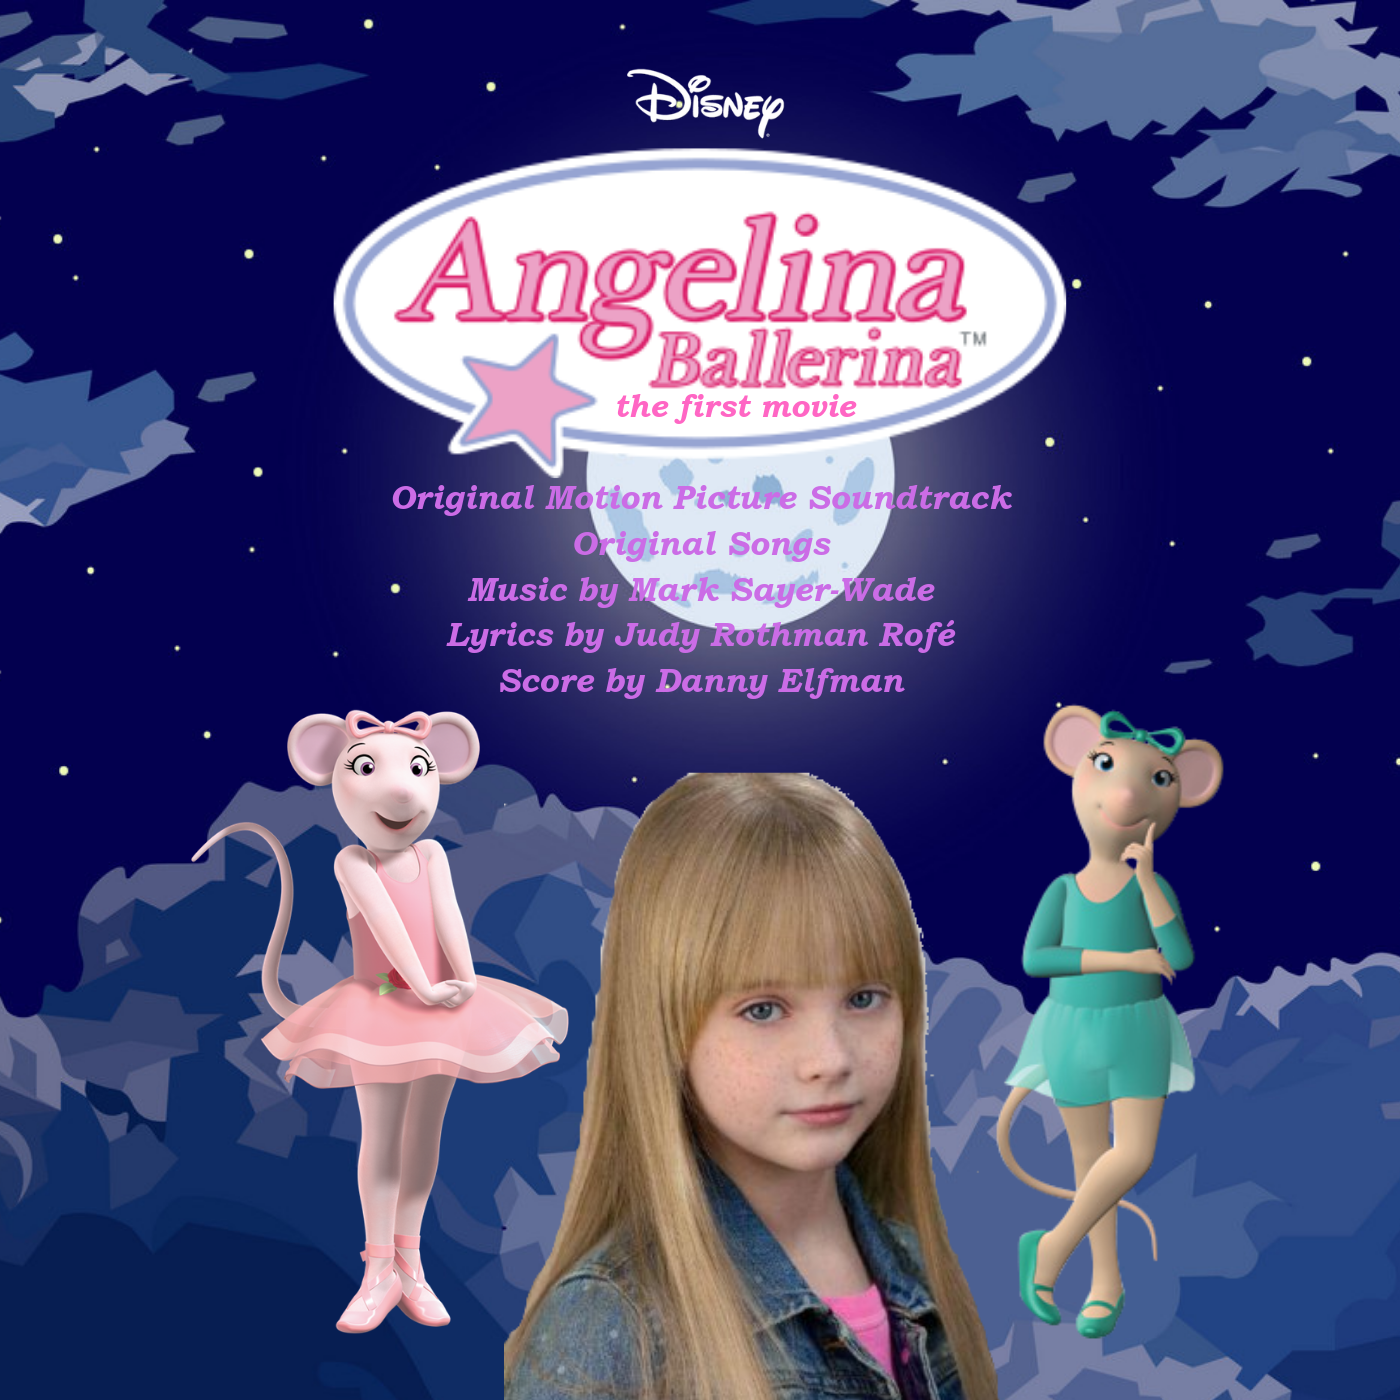 Angelina Ballerina: The First Movie/Soundtrack